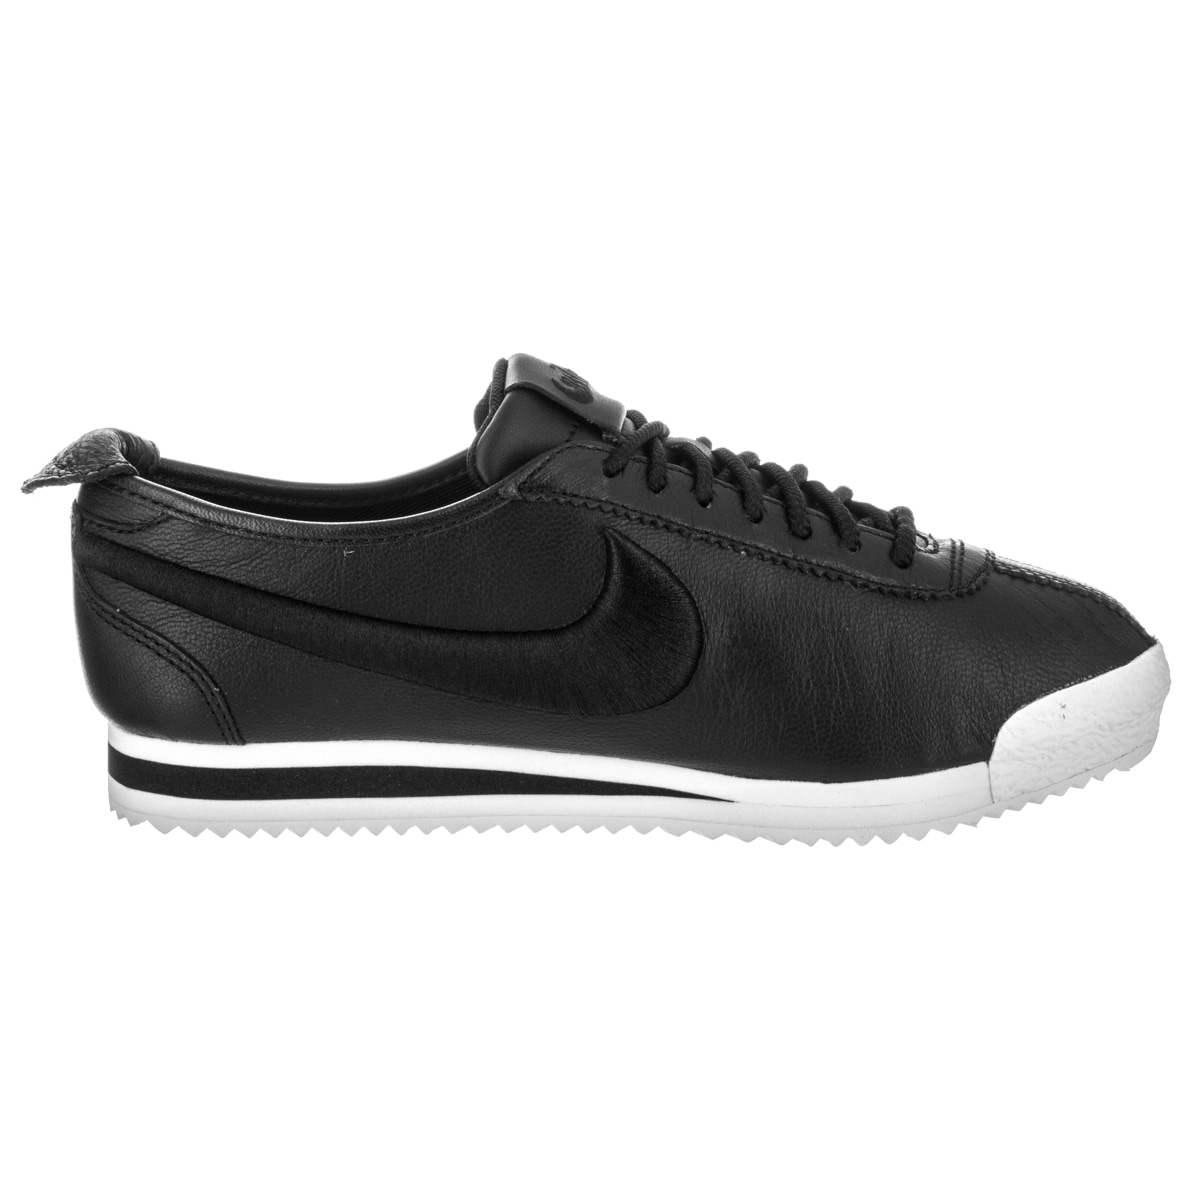 Nike Women's Cortez '72 SI Casual Shoe - Free Shipping Today -  Overstock.com - 20702193